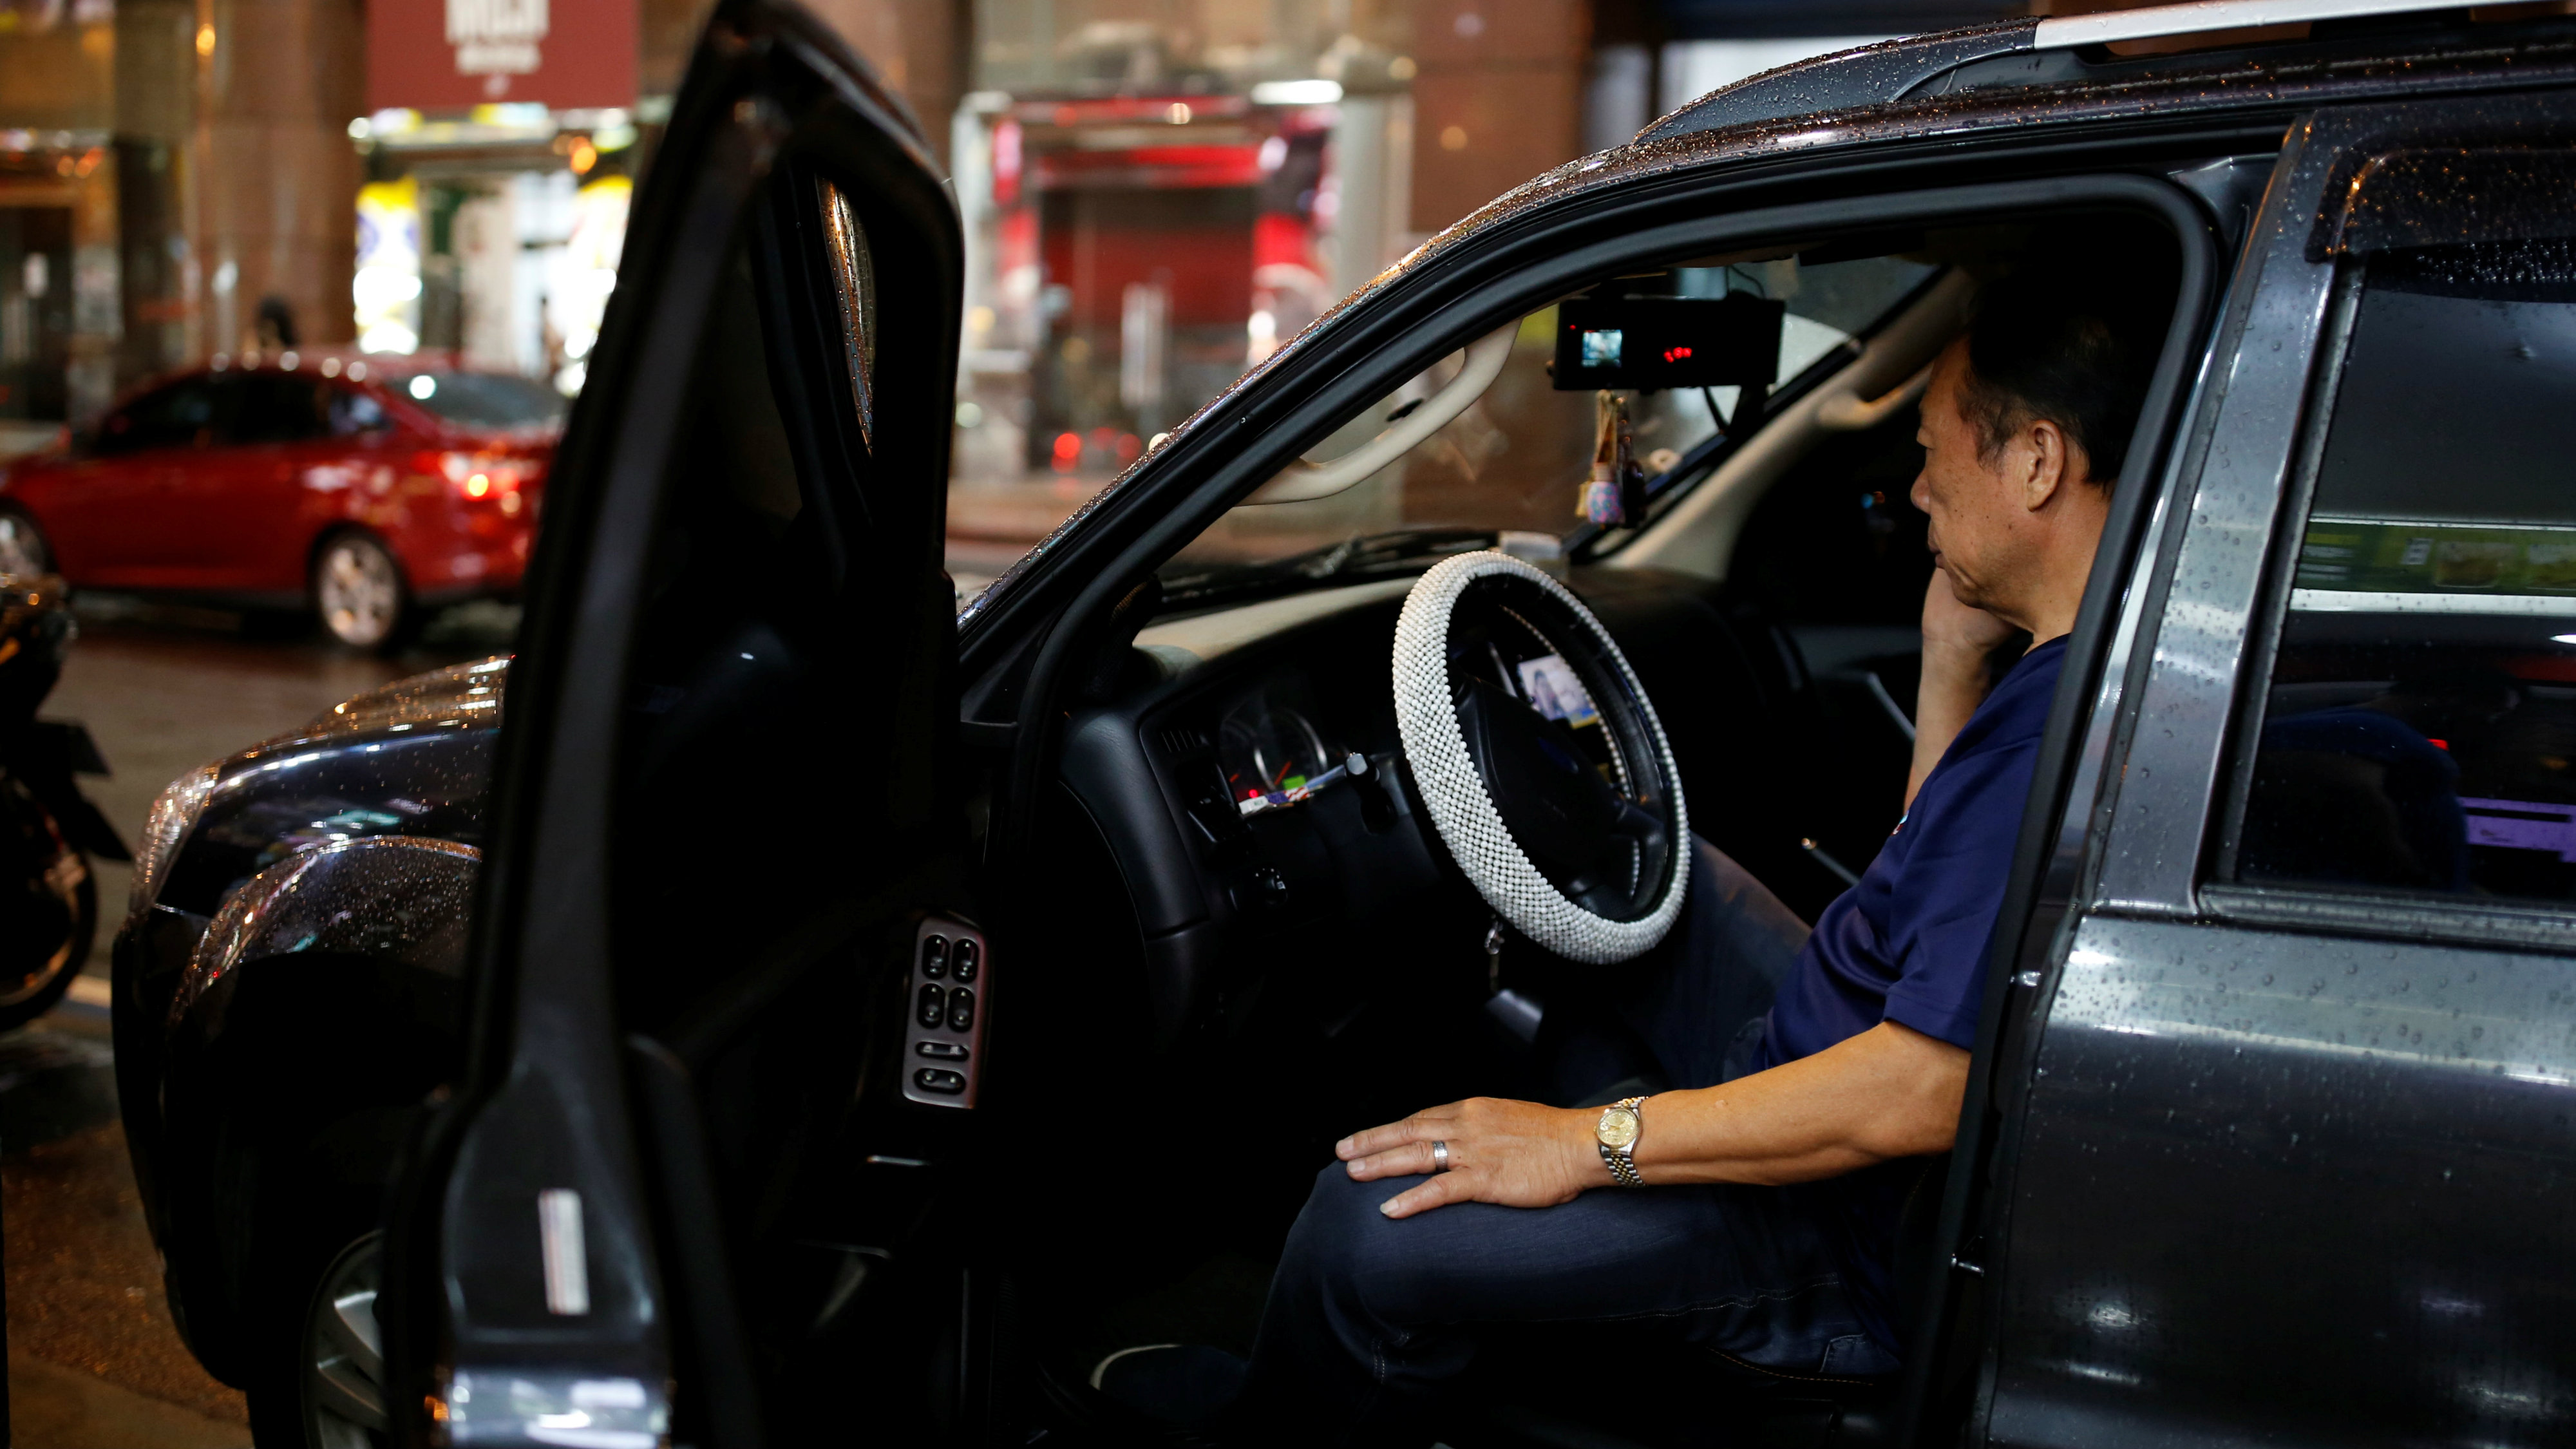 A man uses his mobile phone as he sits in a luxury car in Taipei, Taiwan